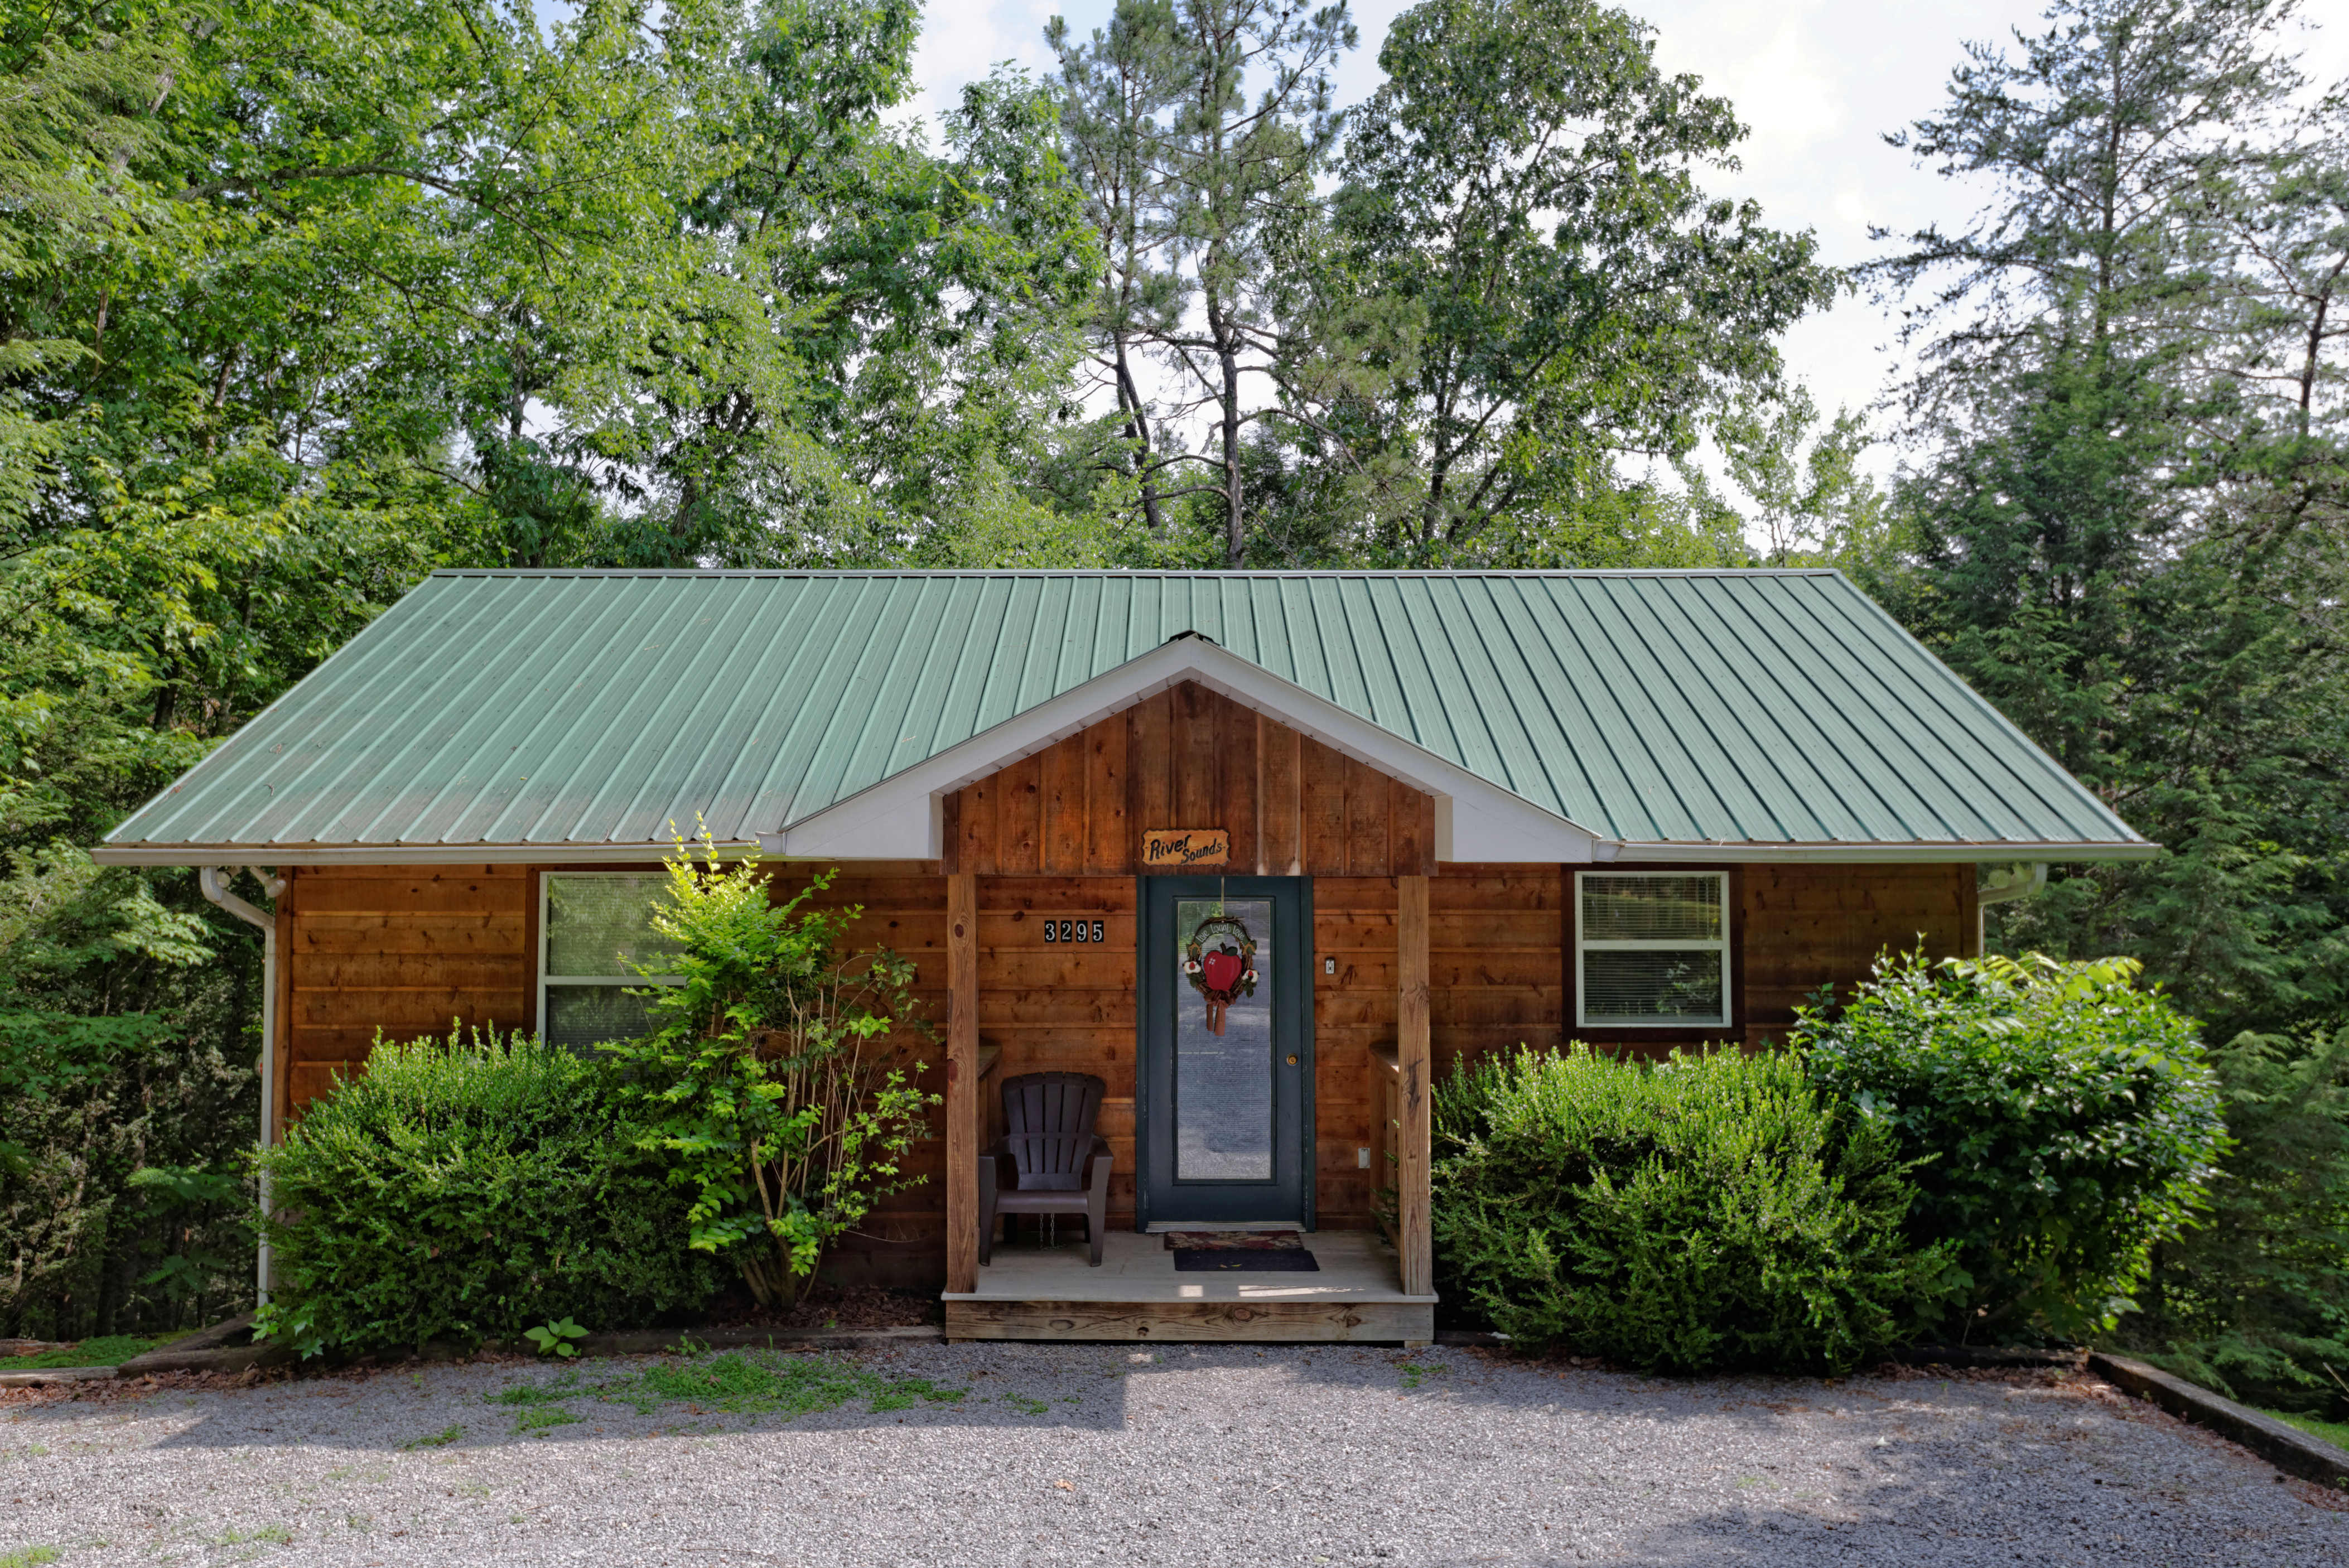 lovers is the river rentals for log listings new cabin placestostay luray virginia front thelogcabinatnewriverretreat retreat at cabins logcabin